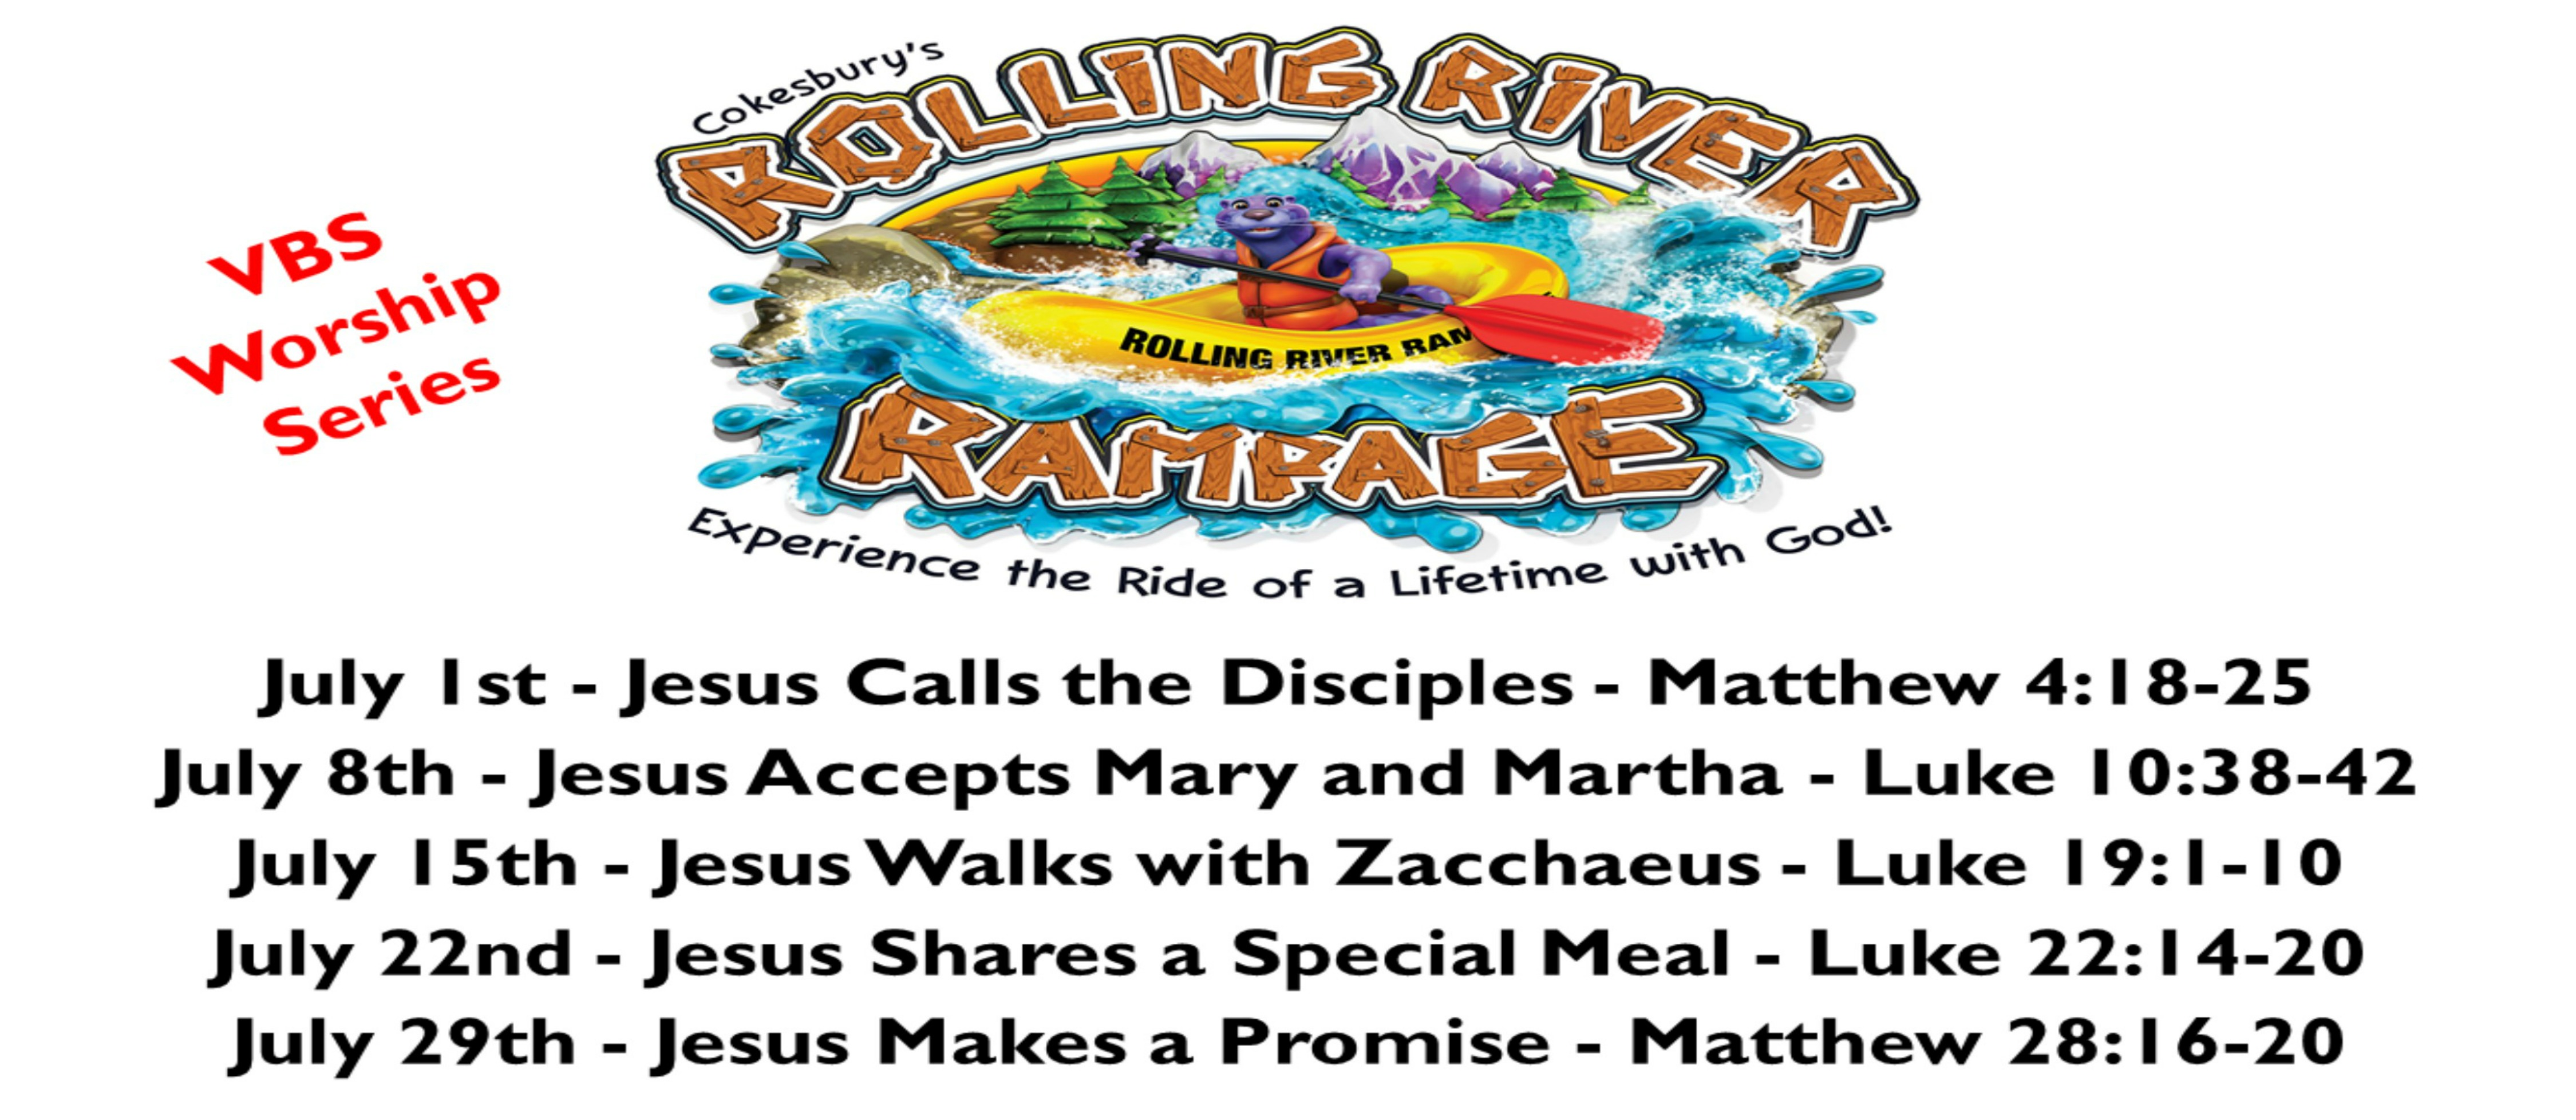 VBS 2018 Andover UMC Rolling River Rampage